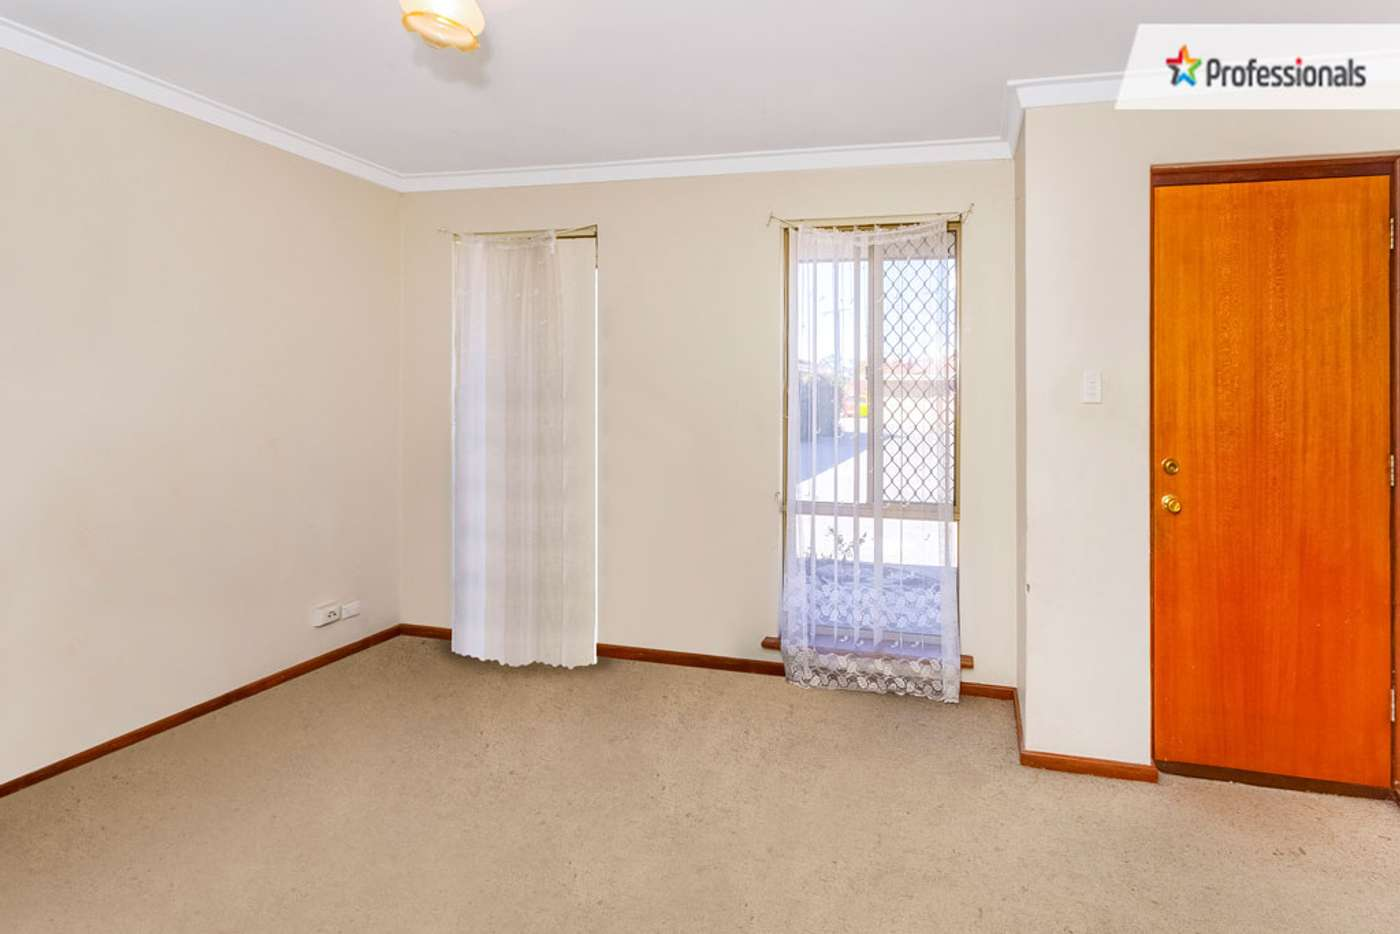 Sixth view of Homely villa listing, 8/13 Chich Place, Cannington WA 6107